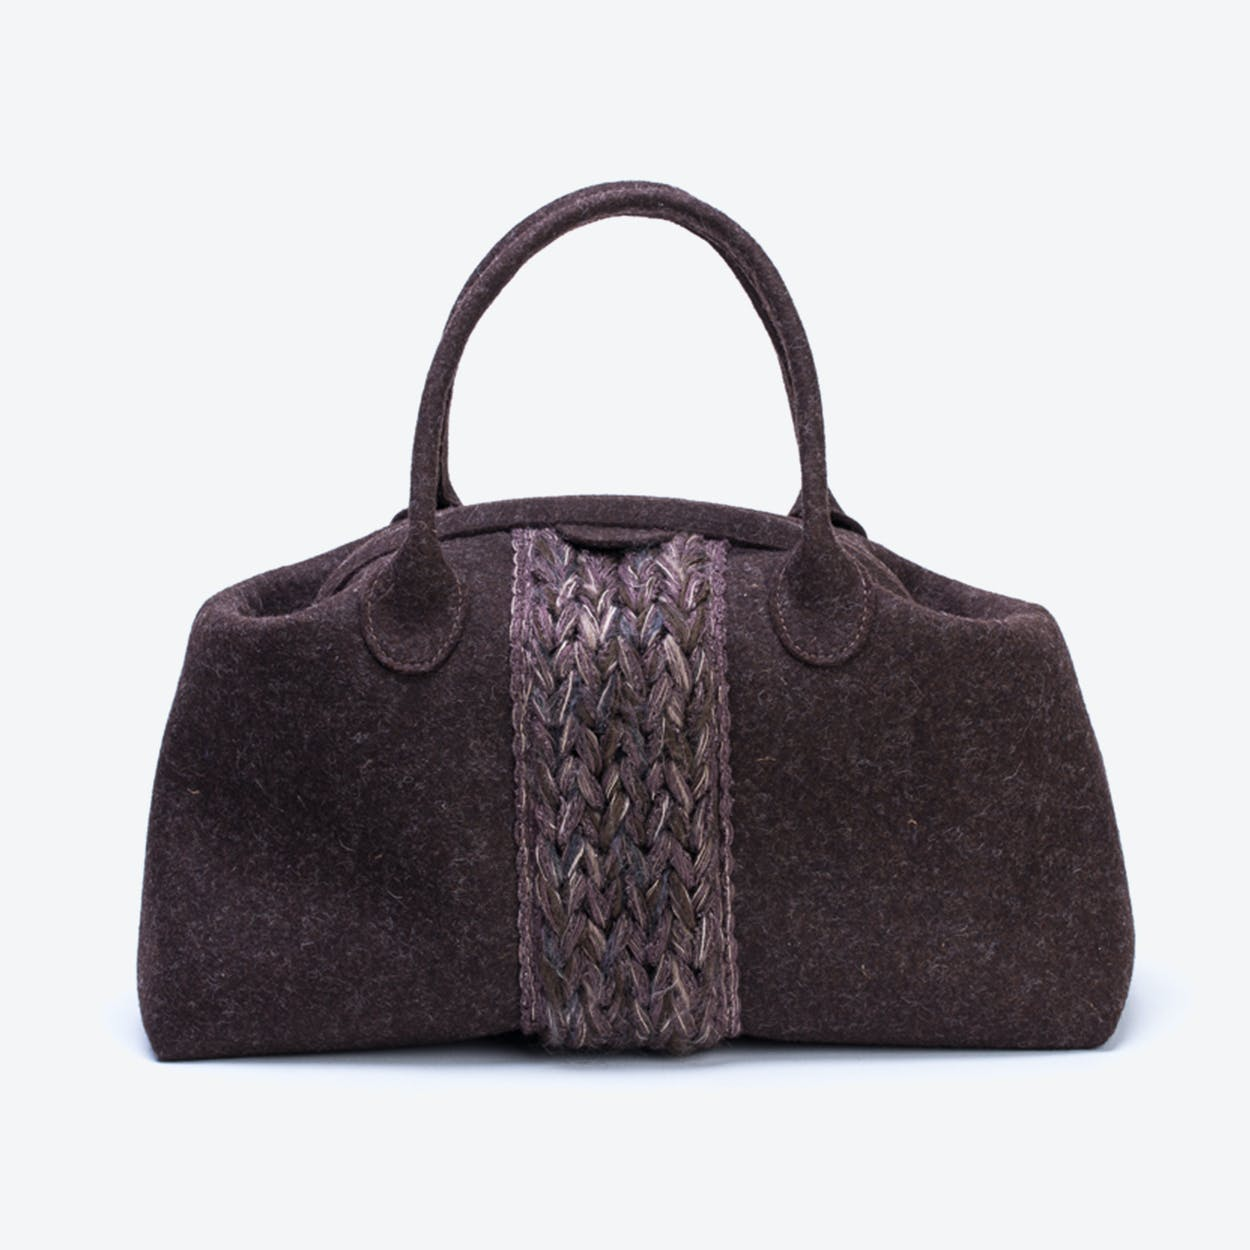 Plait Bag in Truffle Brown